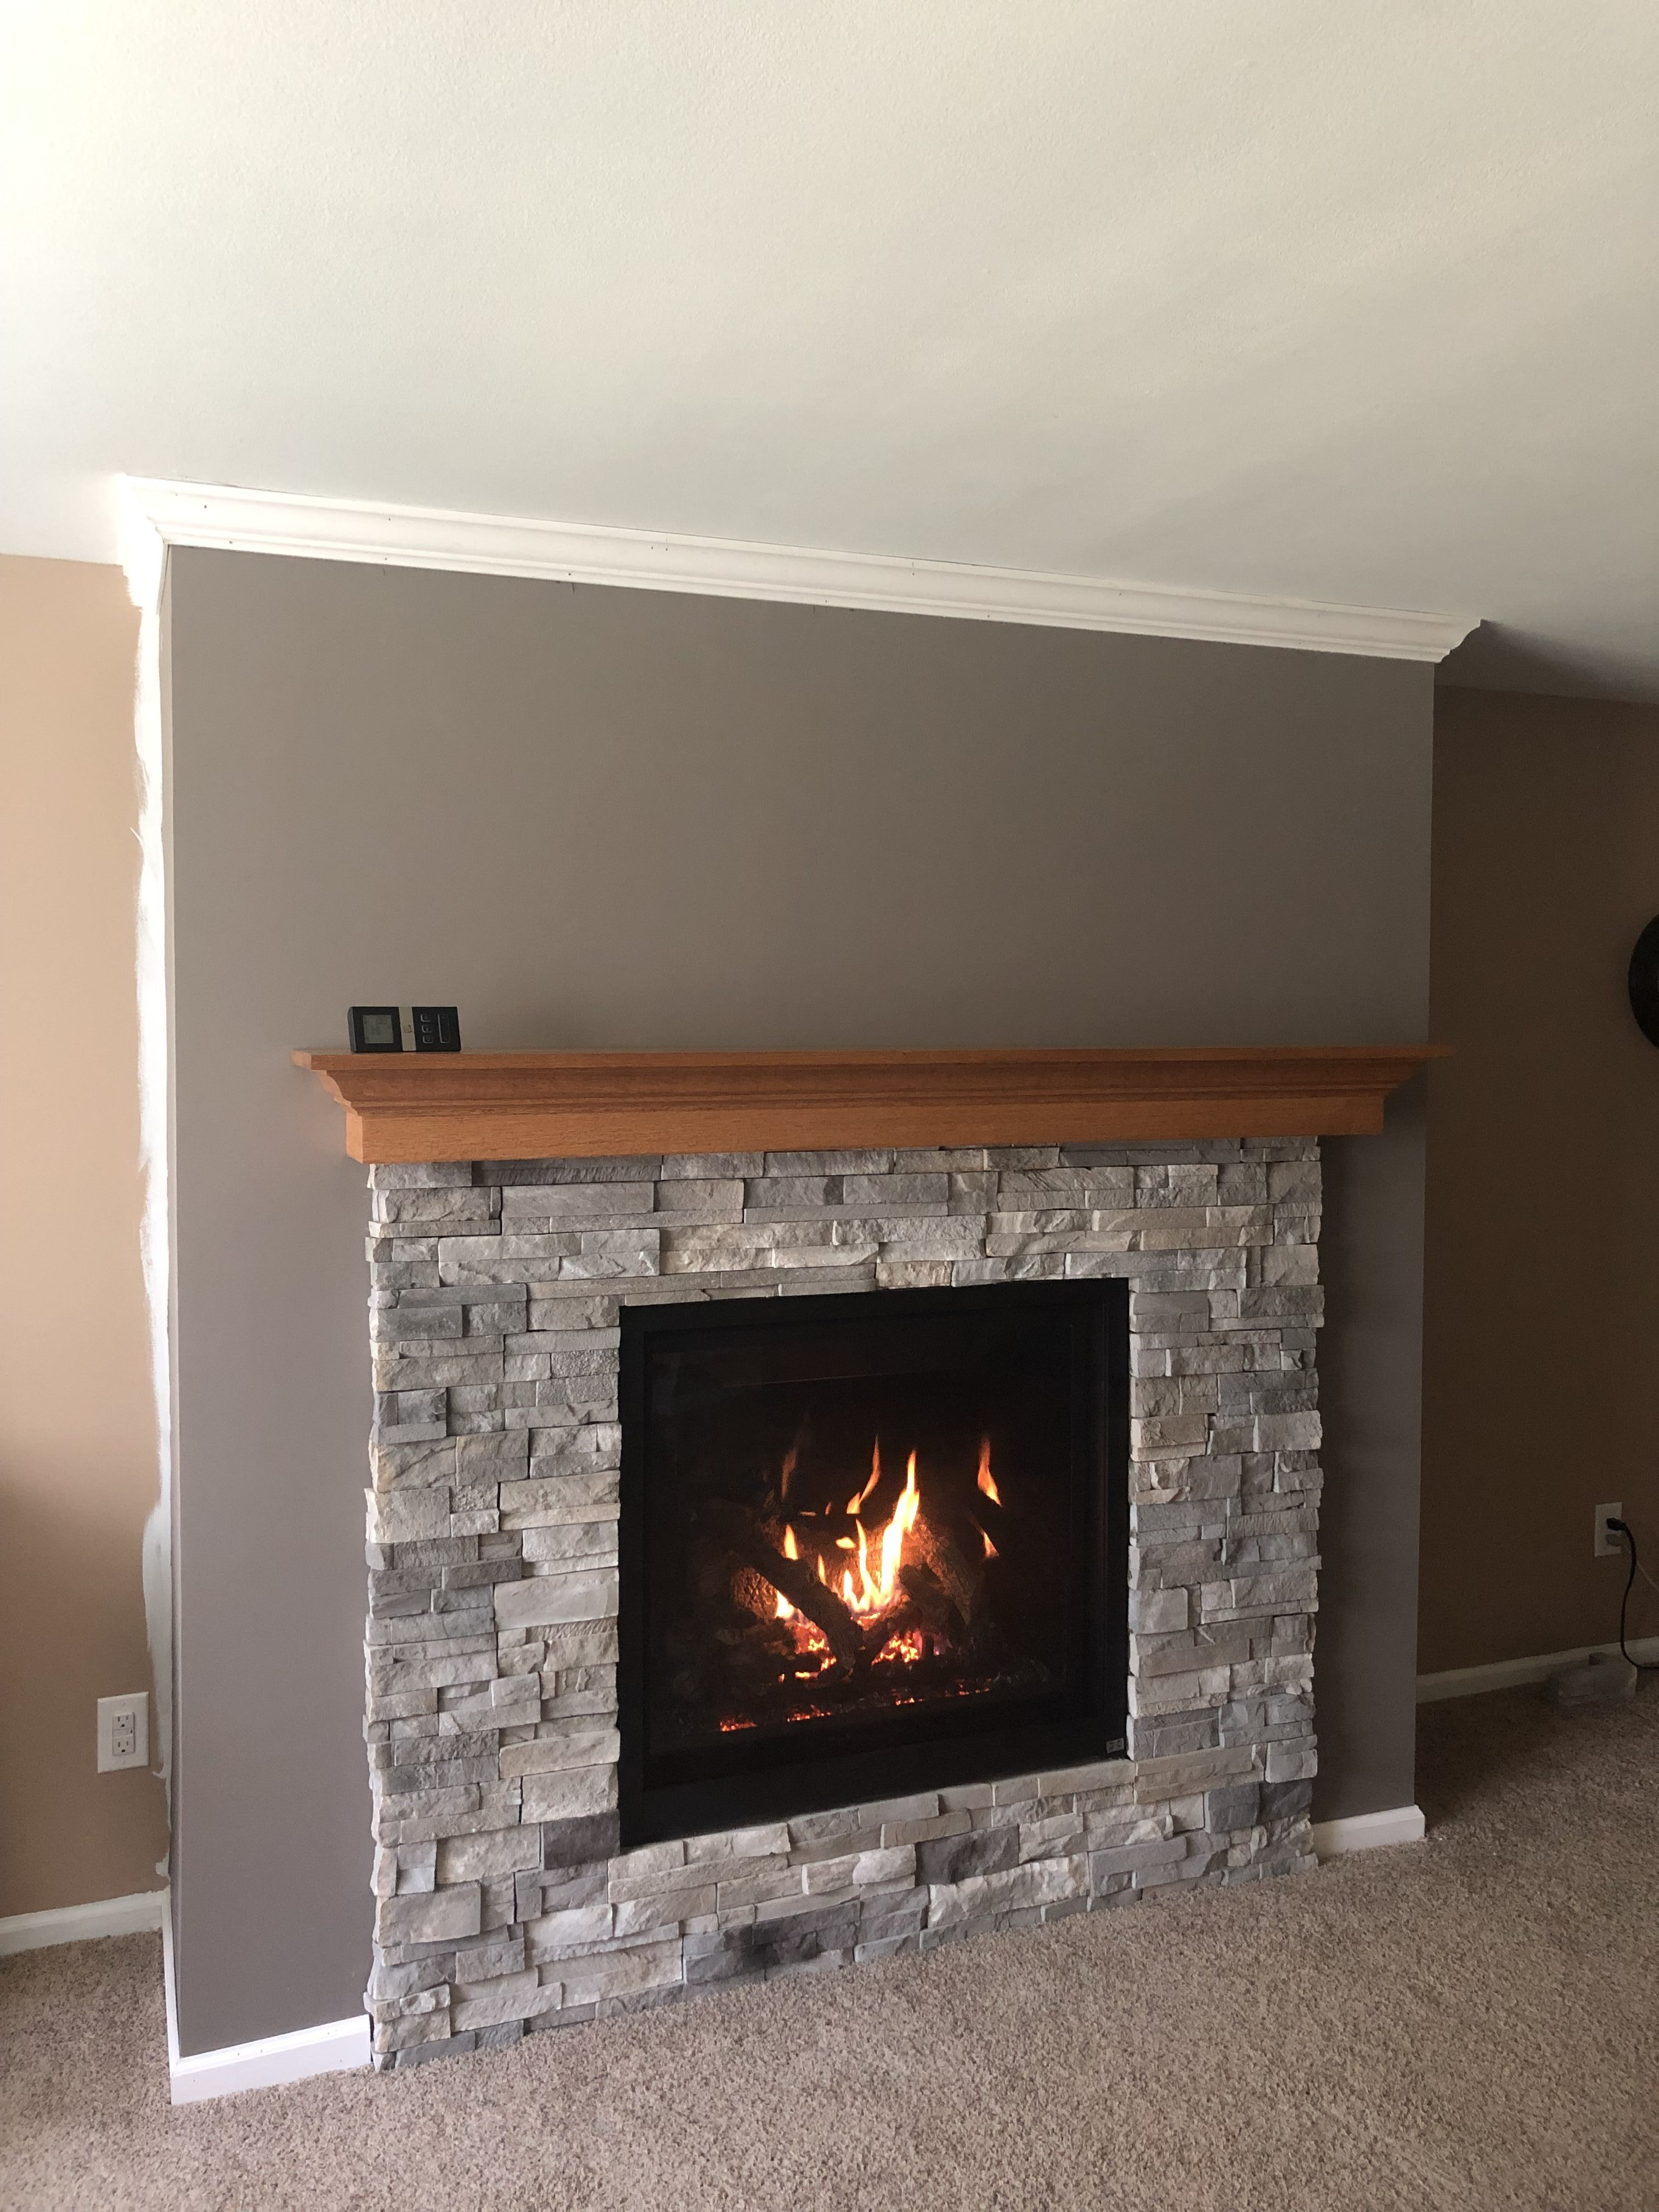 Image of a Probuilder 36CF Gas fireplace by Travis Industries featuring reflective ceramic black glass interior and stone facing.